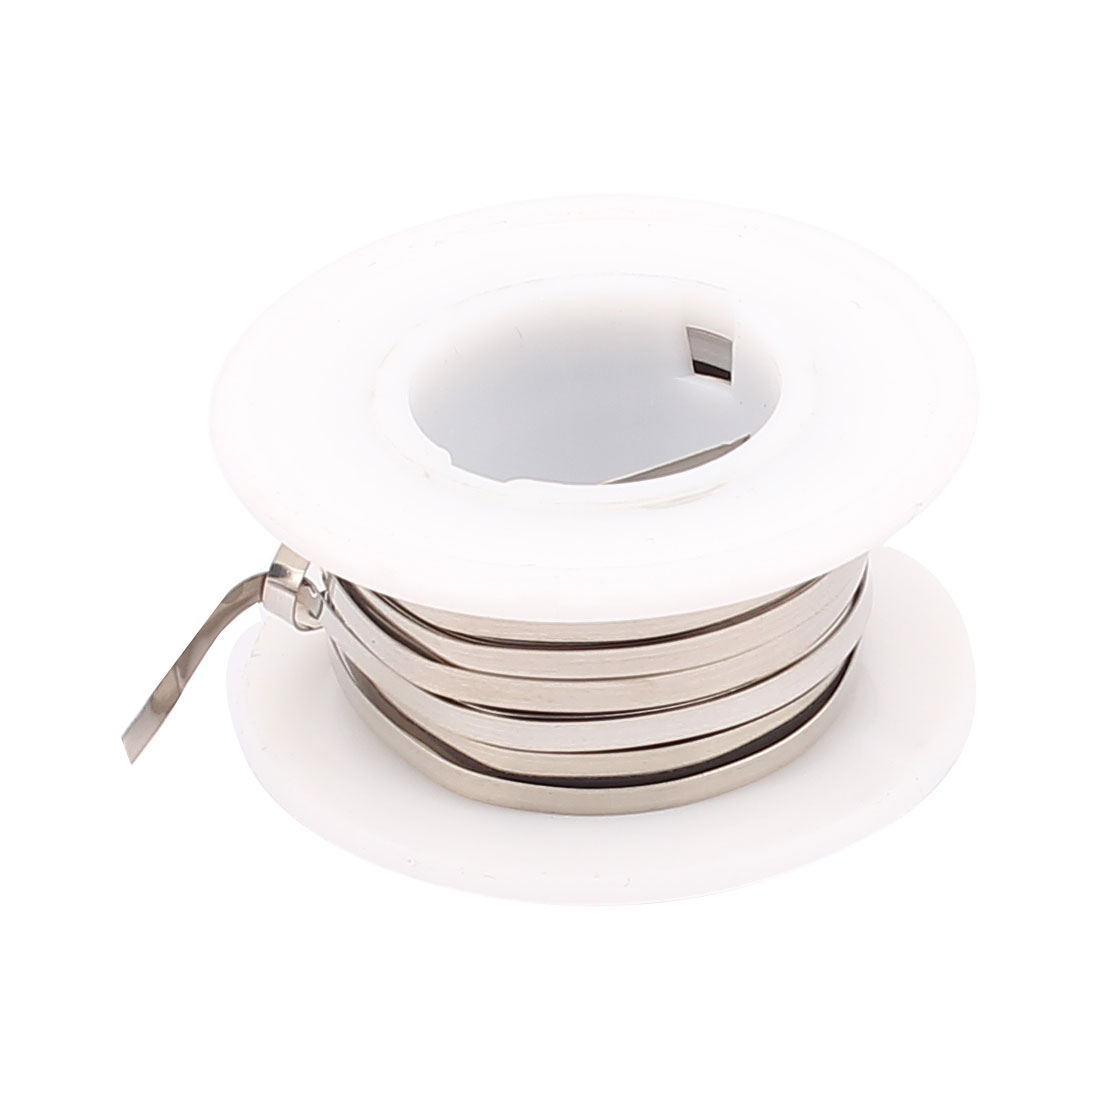 5M 16.4Ft 0.2x2mm Nichrome Flat Heater Wire for Heating Elements